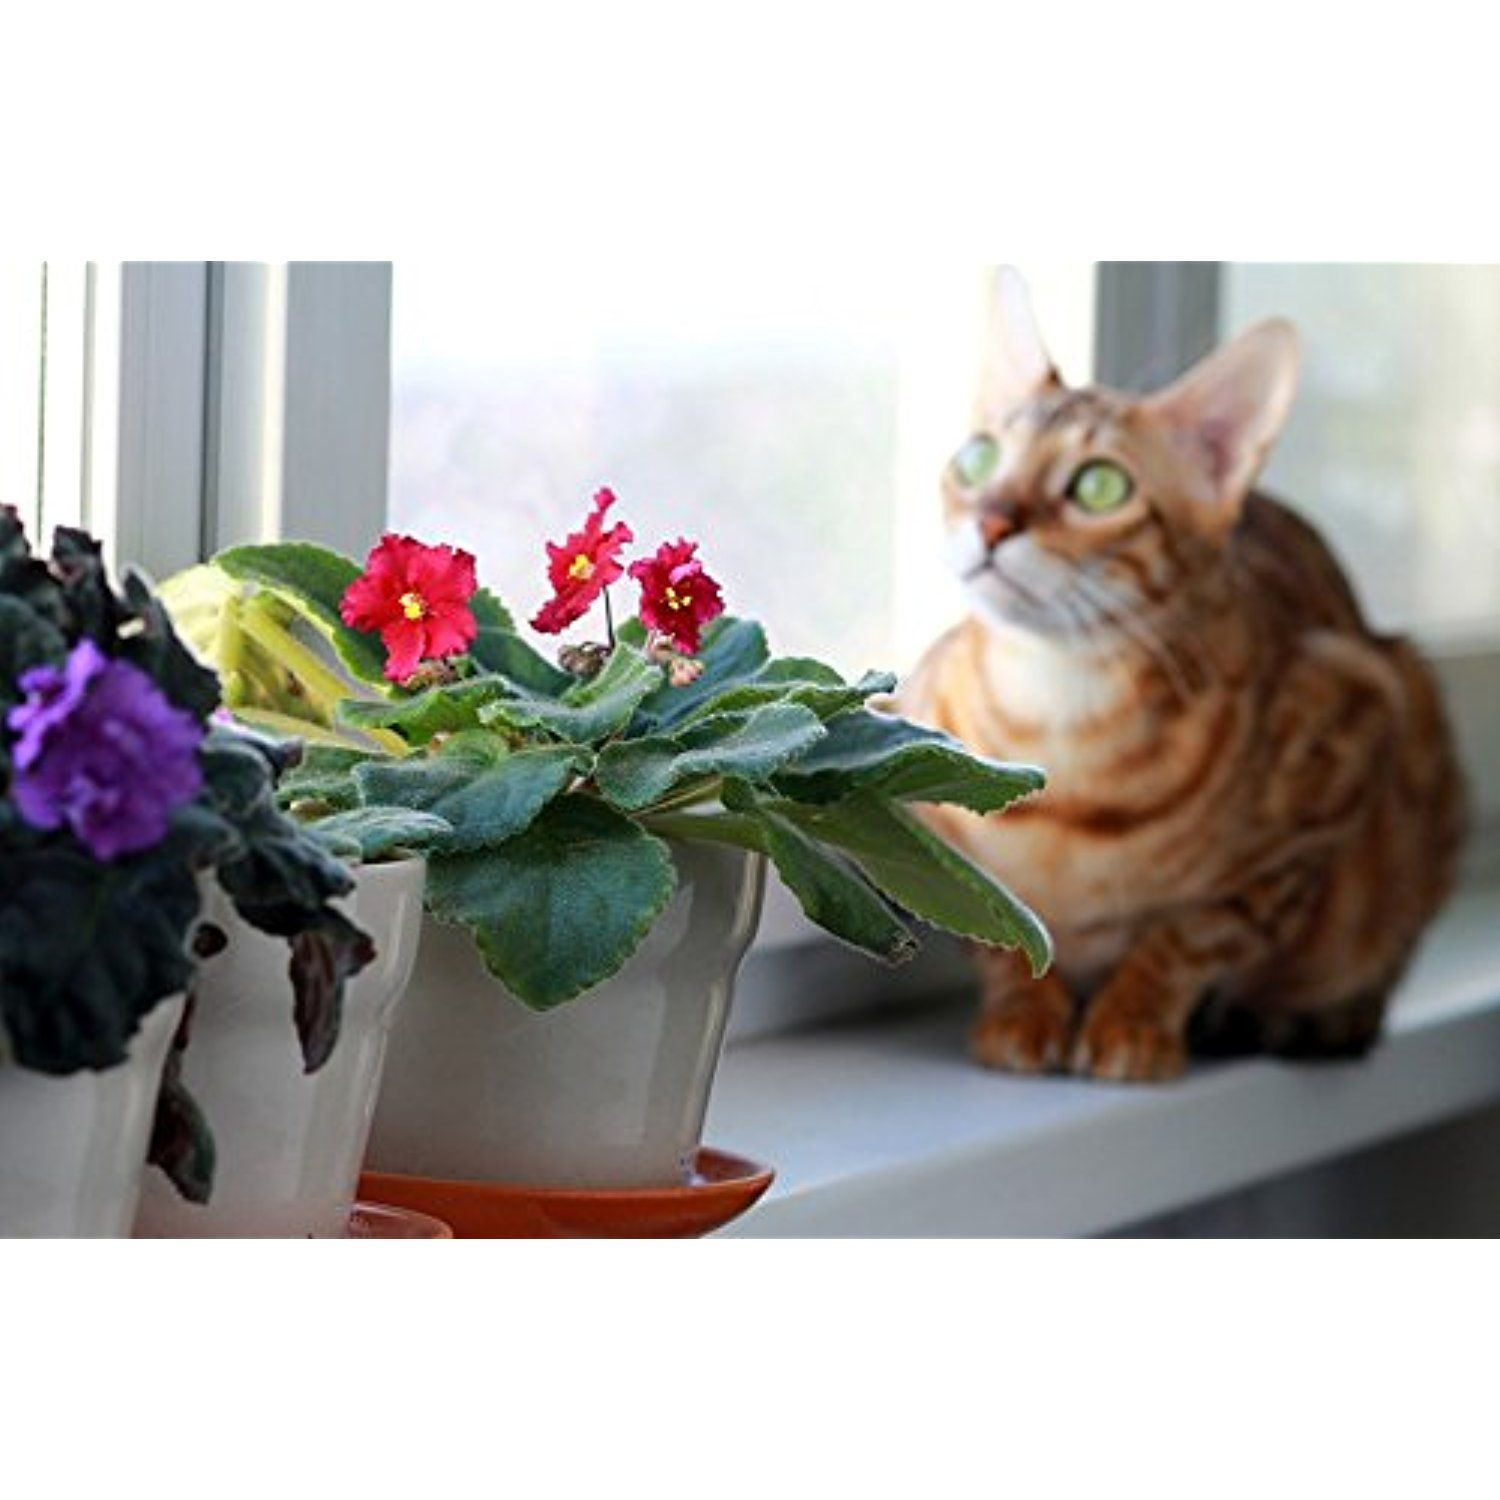 Laminated Poster On The Windowsill Bengali Cat Breed Window Pet Print 24 X 36 Find Out More About Great Product At Image Link